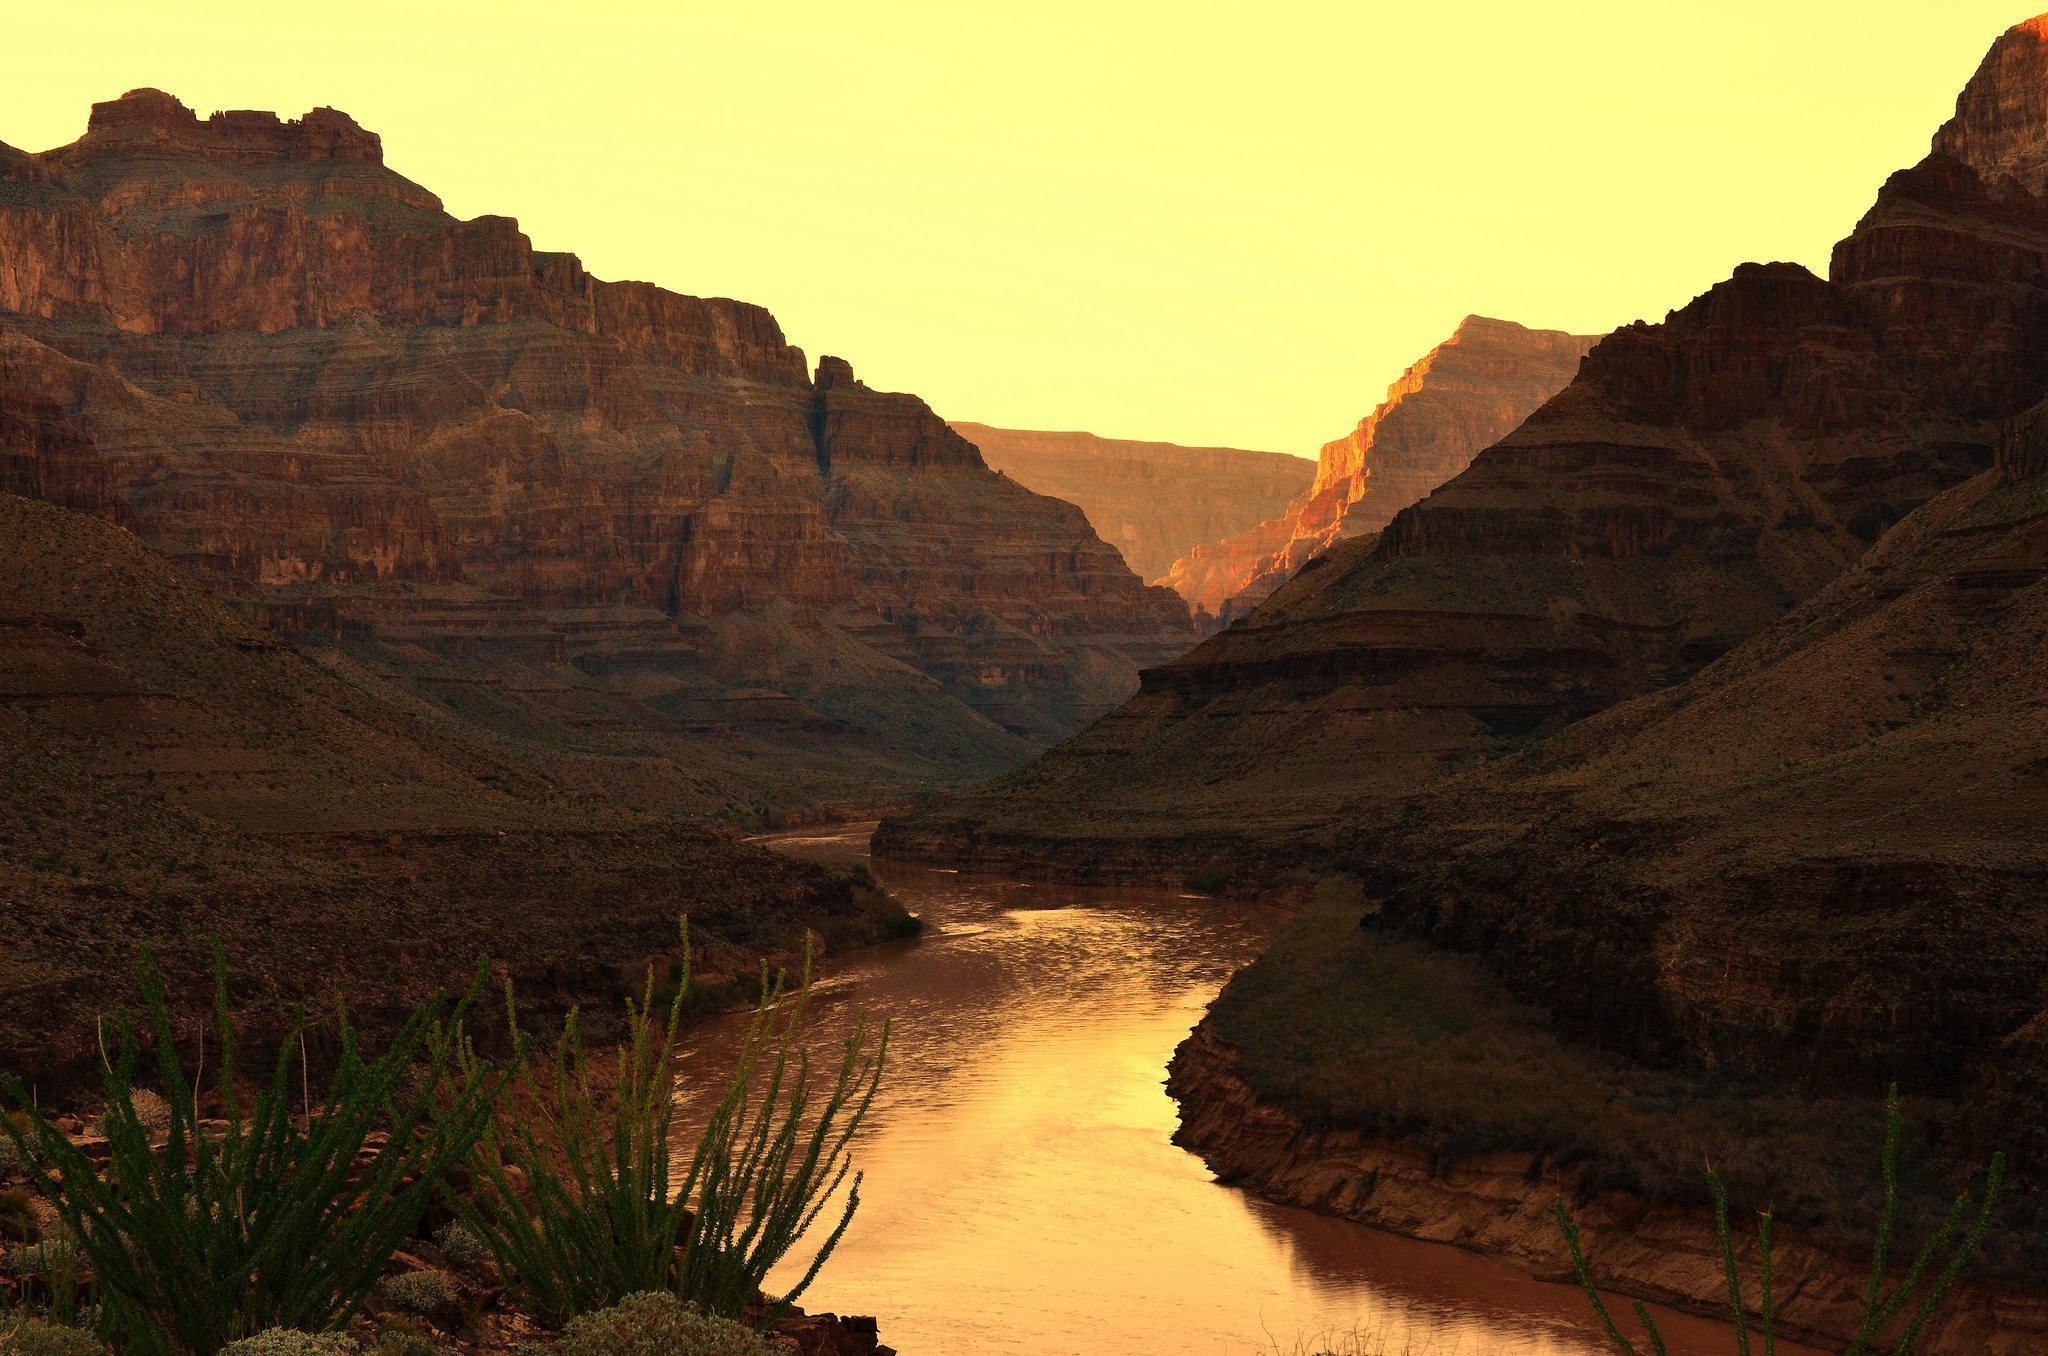 Image: A lake in the Grand Canyon at sunset